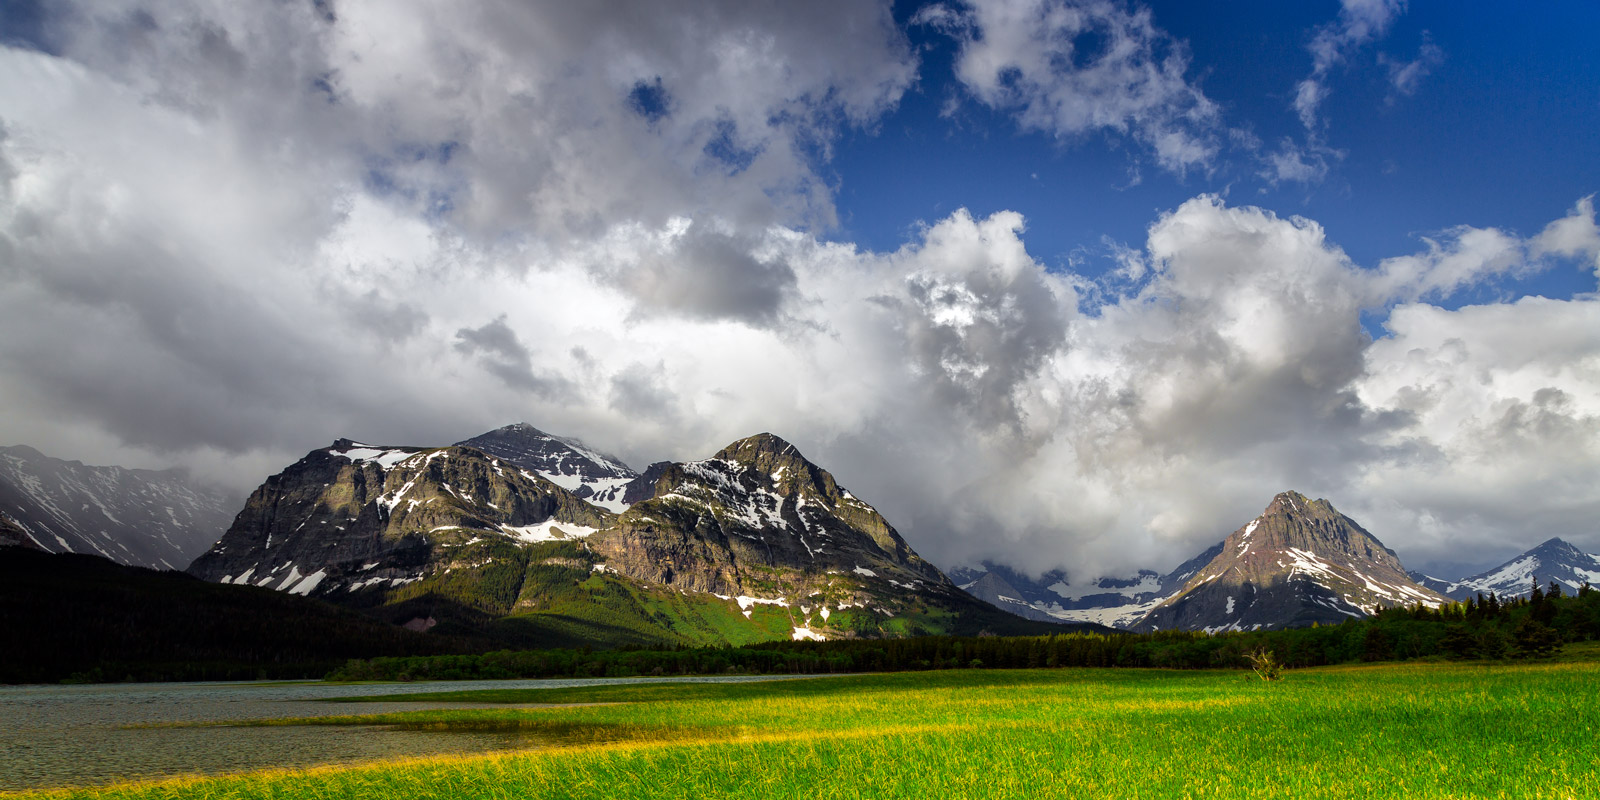 A Limited Edition, Fine Art photograph of storm clouds building up big over the mountains at Lake Sherburne in Glacier National...